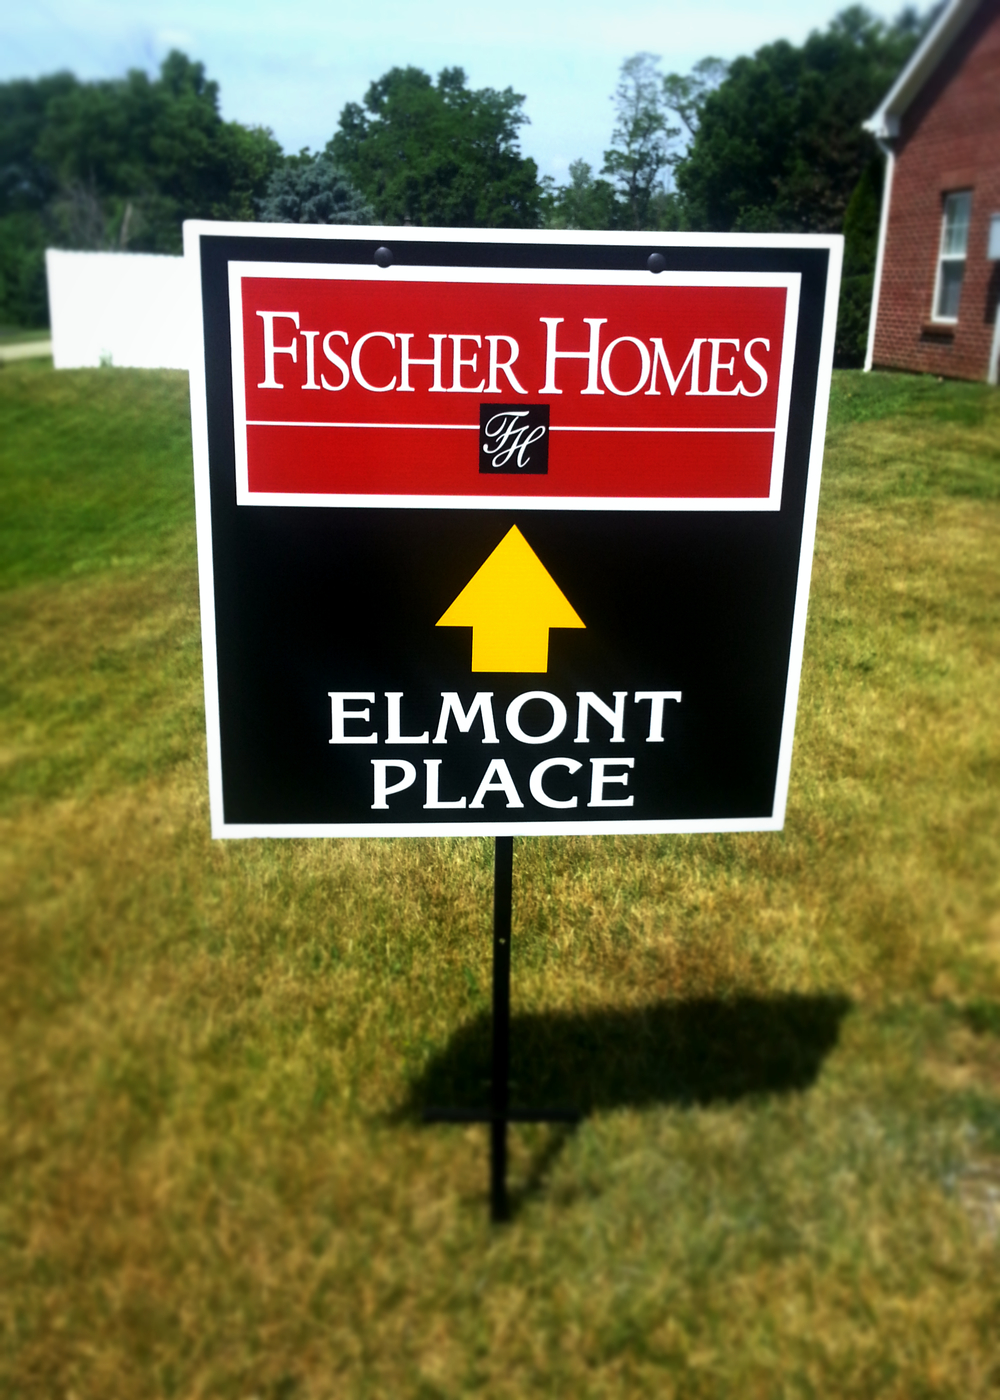 2015.06.05 Fischer Homes Elmont Place Directional.jpg